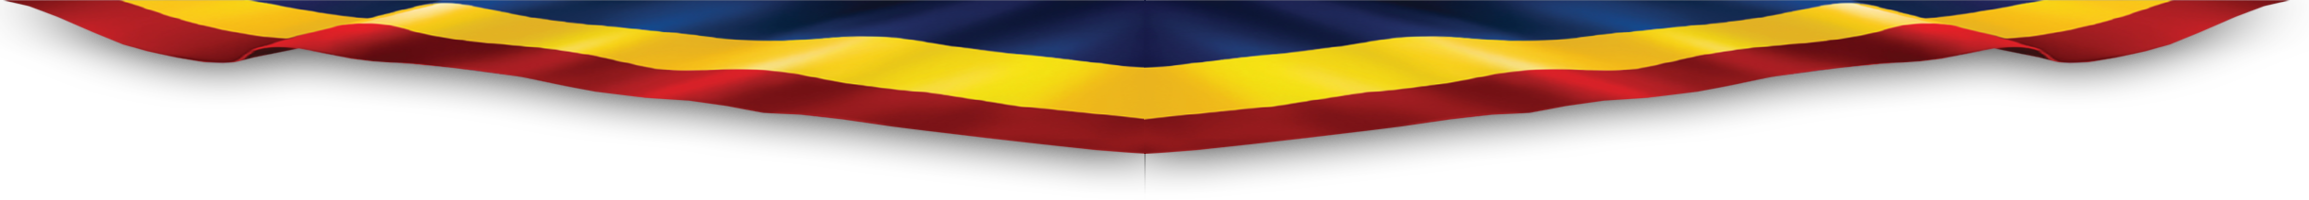 Steag Tricolor Png Romania Media Graphics Online 2